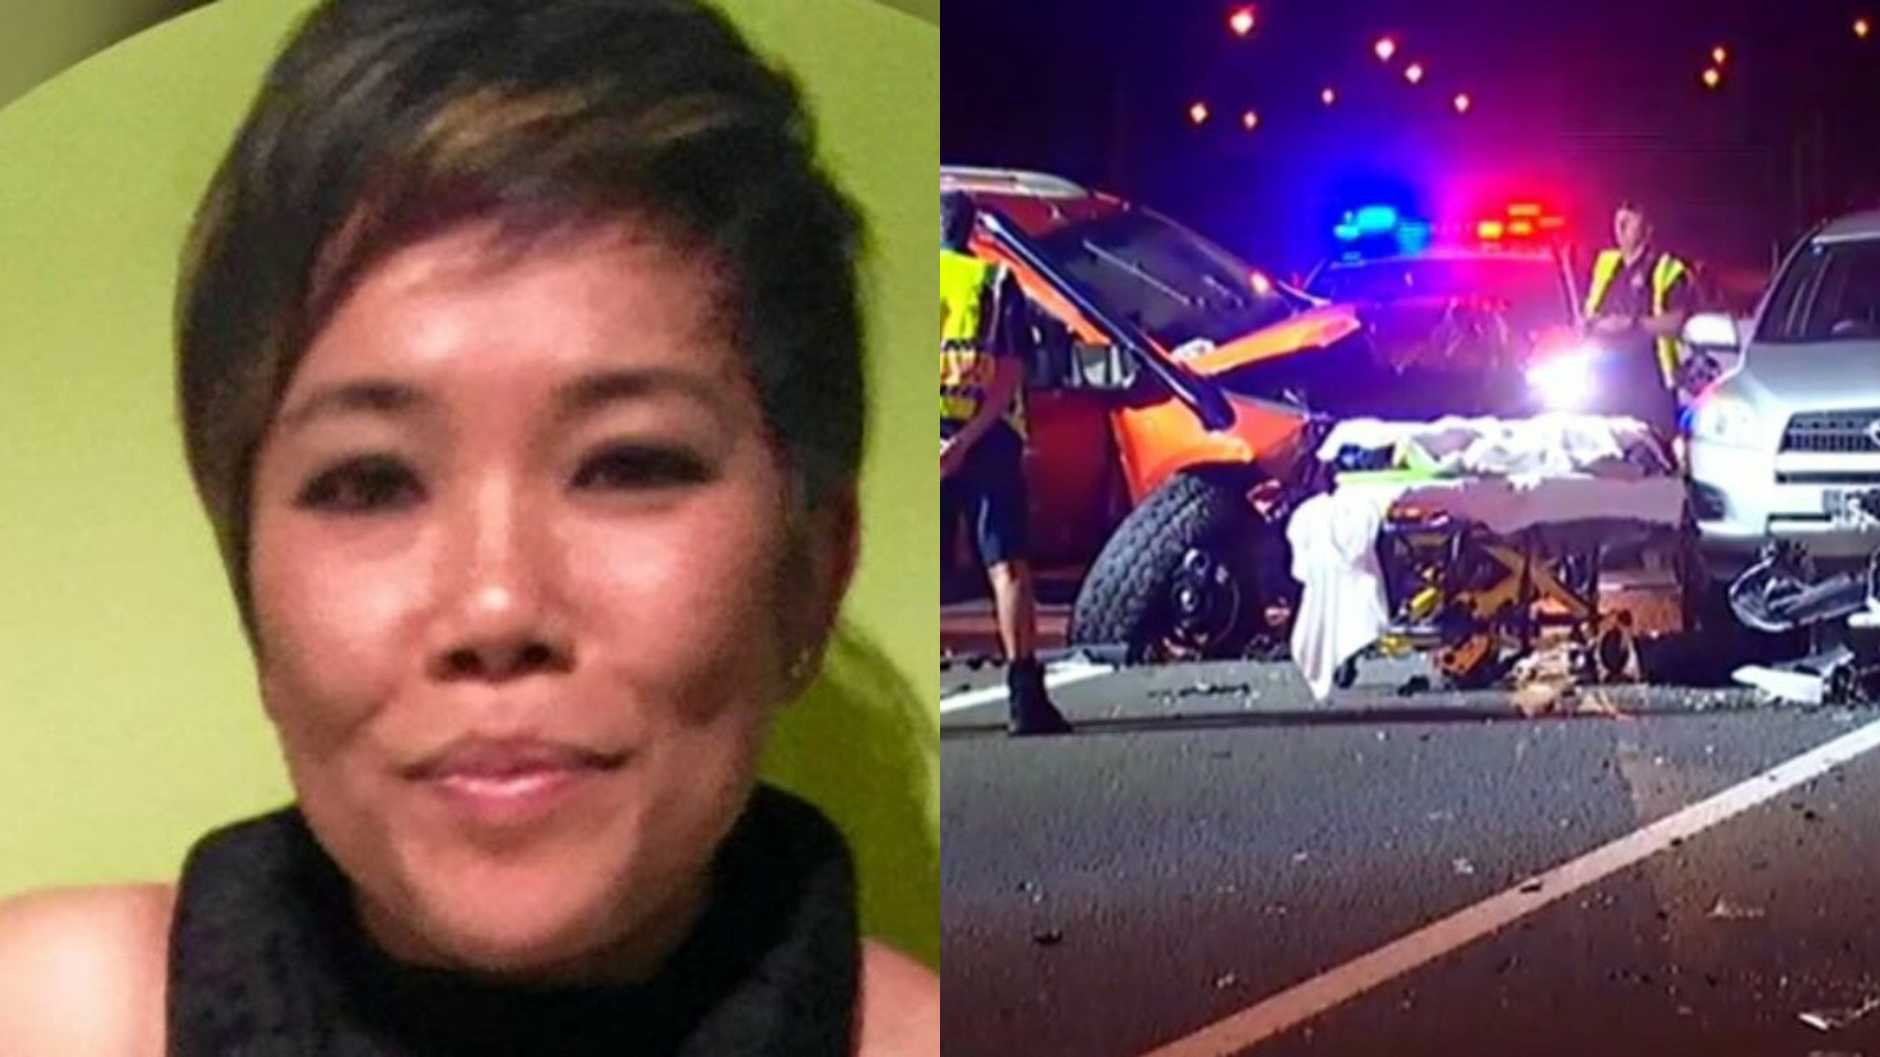 James David Berns has been jailed for the death of Jirapan (Nina) Pitayaprichakul (pictured) in a crash on the Sunshine Motorway last year. Photos: 7News/Contributed